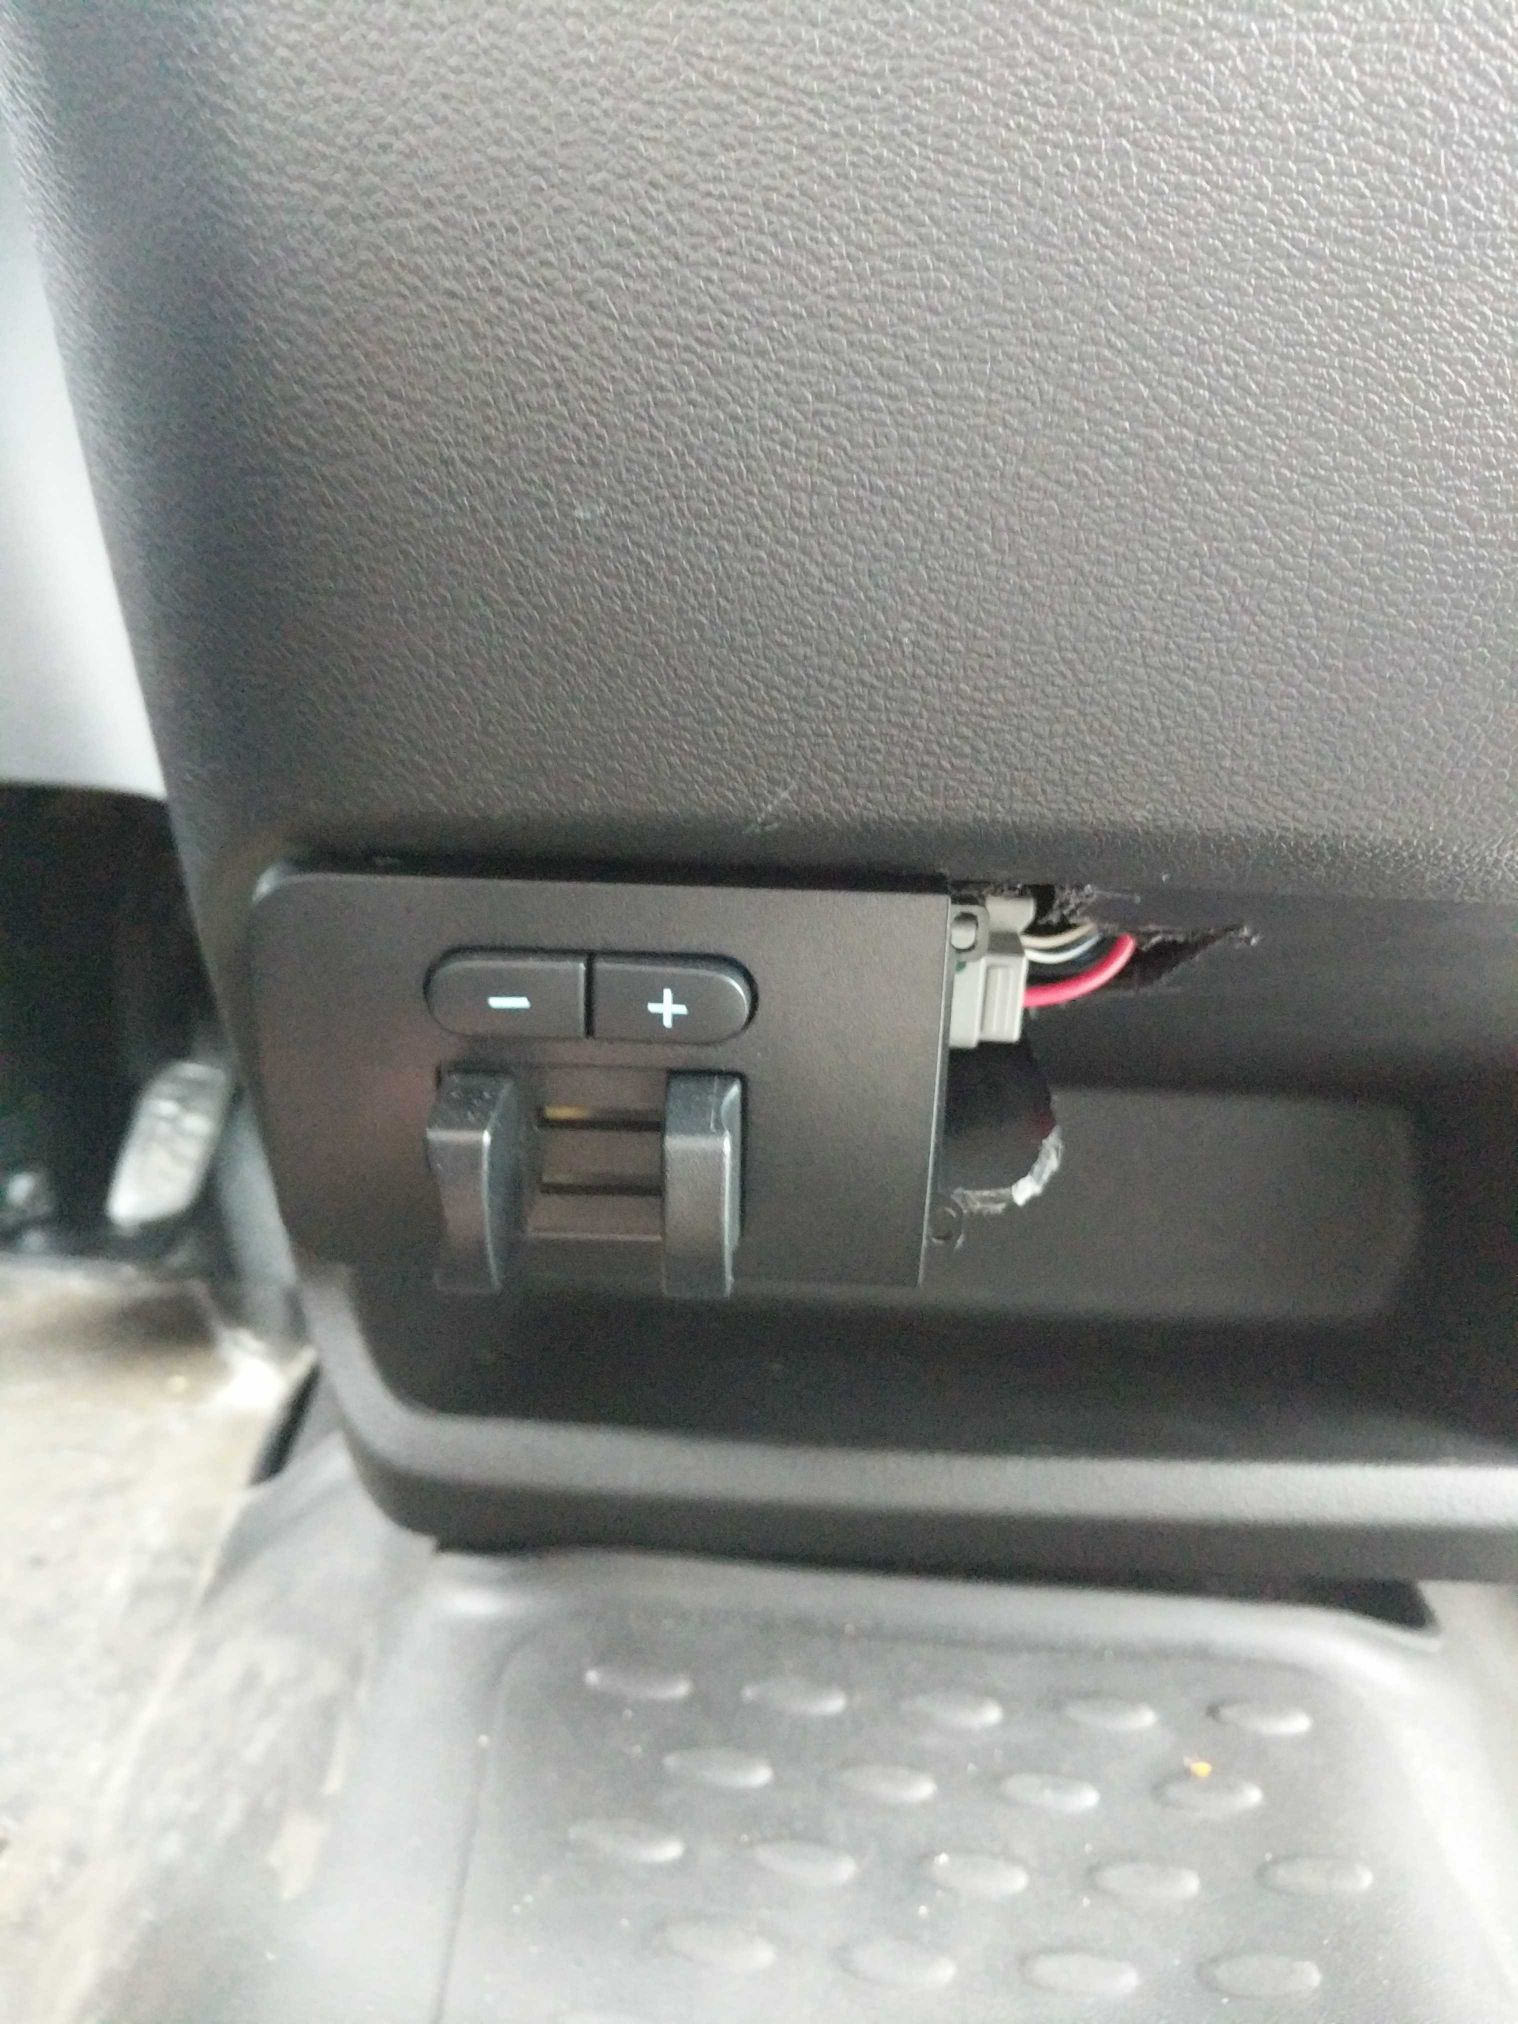 Plug for it is in center console just plugs in. My works fine just doesn't  show gains but you only got 1-10 so it can be counted.